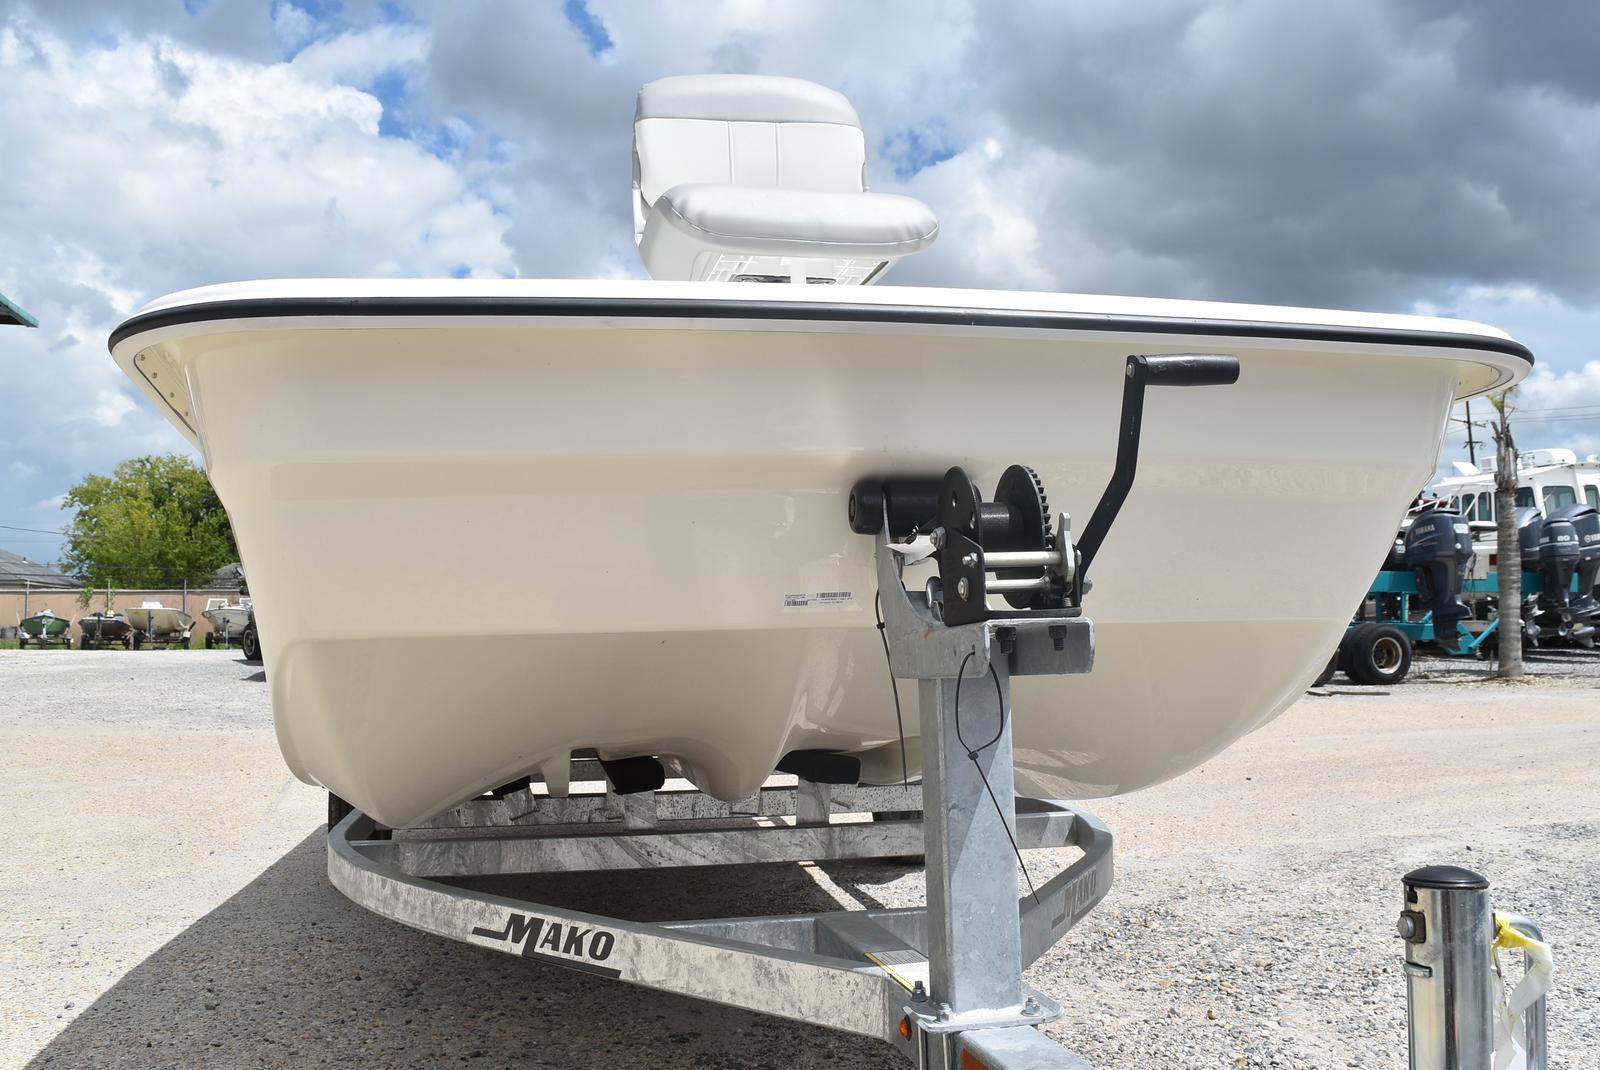 2020 Mako boat for sale, model of the boat is Pro Skiff 17, 75 ELPT & Image # 348 of 702